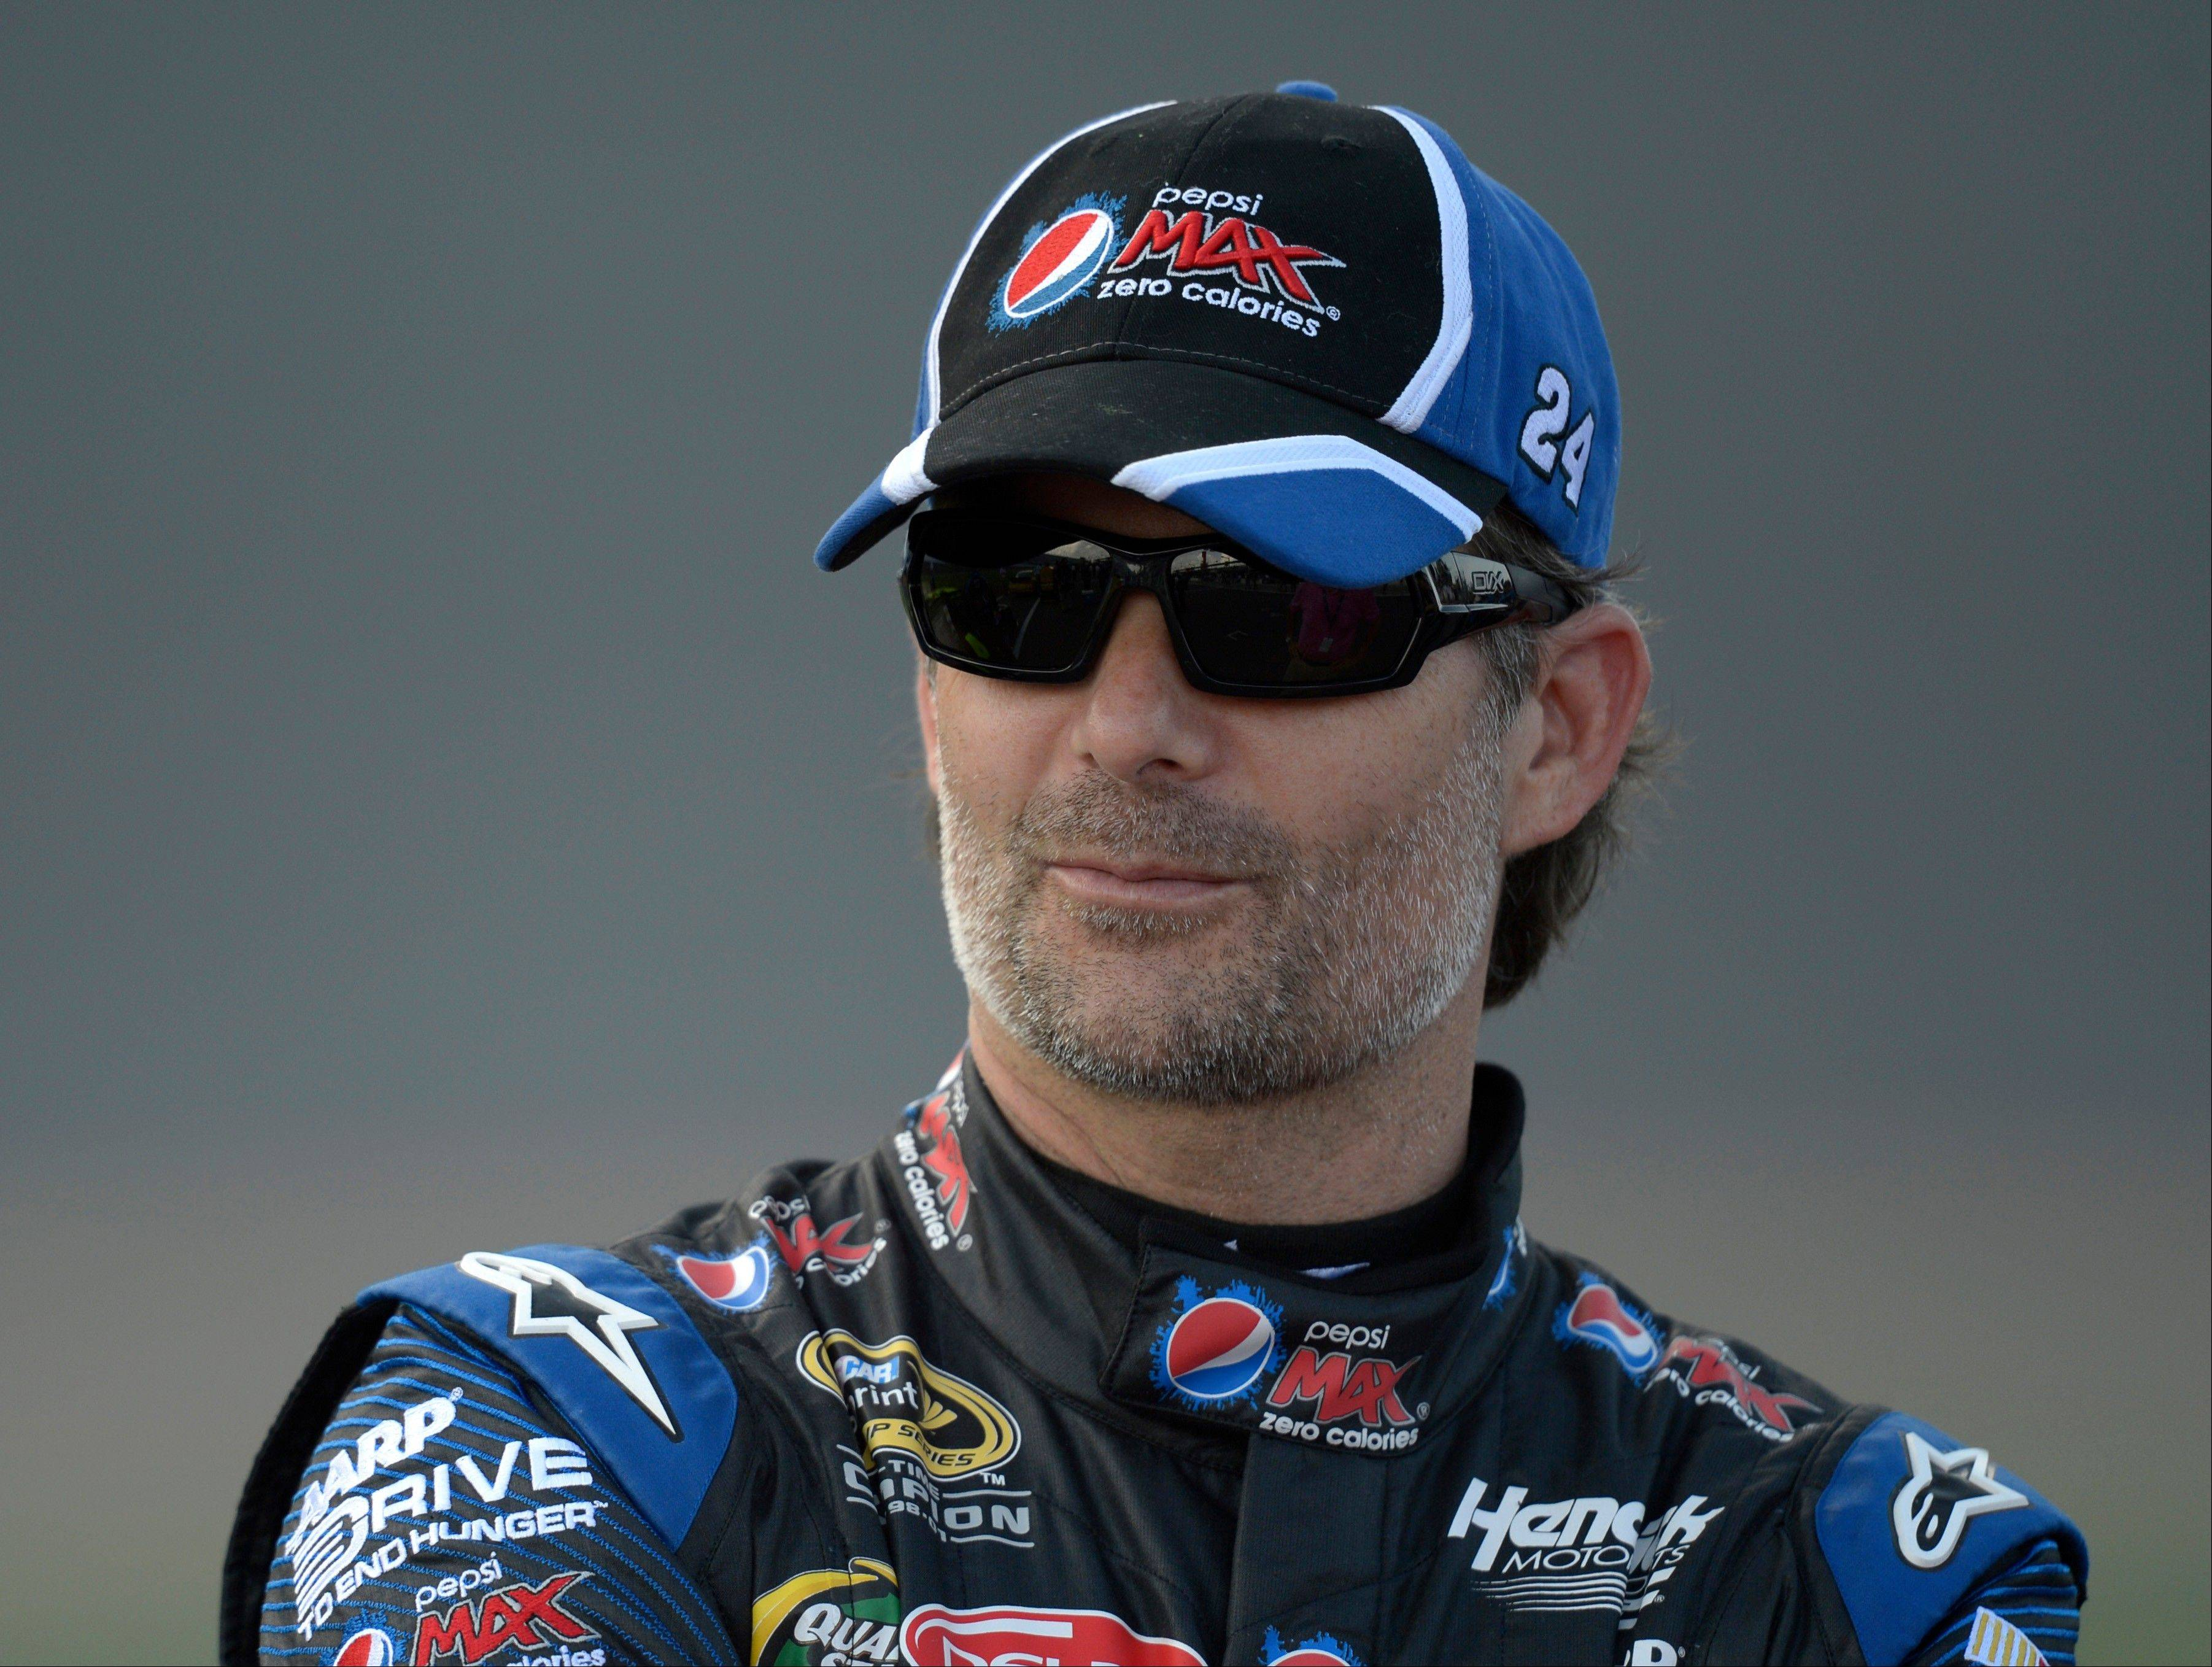 NASCAR driver Jeff Gordon vowed he'd grow his famous mustache back if he made the Chase for the NASCAR Sprint Cup. He qualified Saturday with a late push to finish second at Richmond.